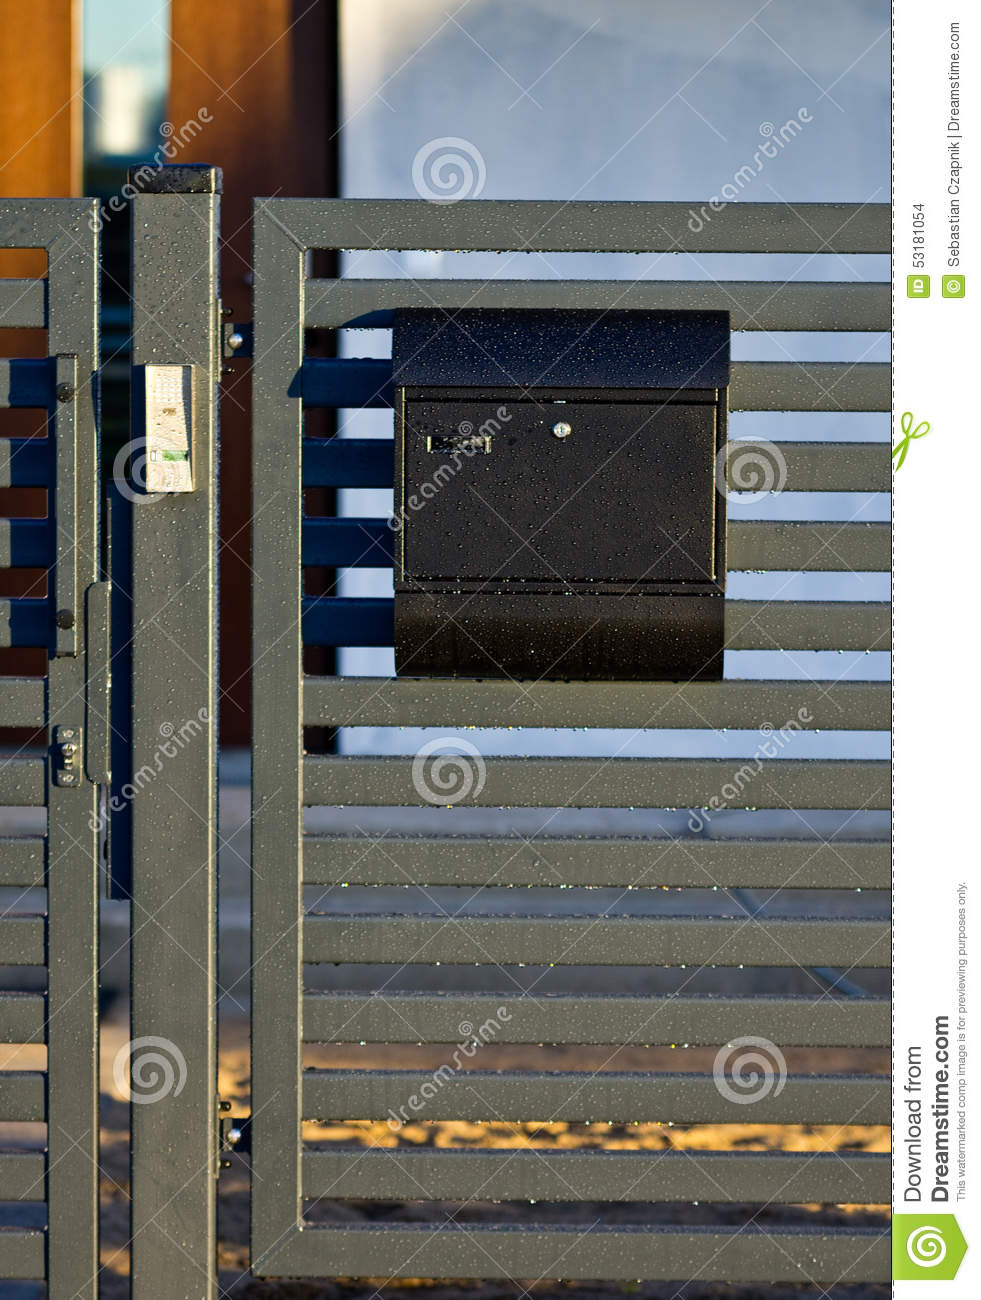 Mailbox on a house fence stock photo   image: 53181054